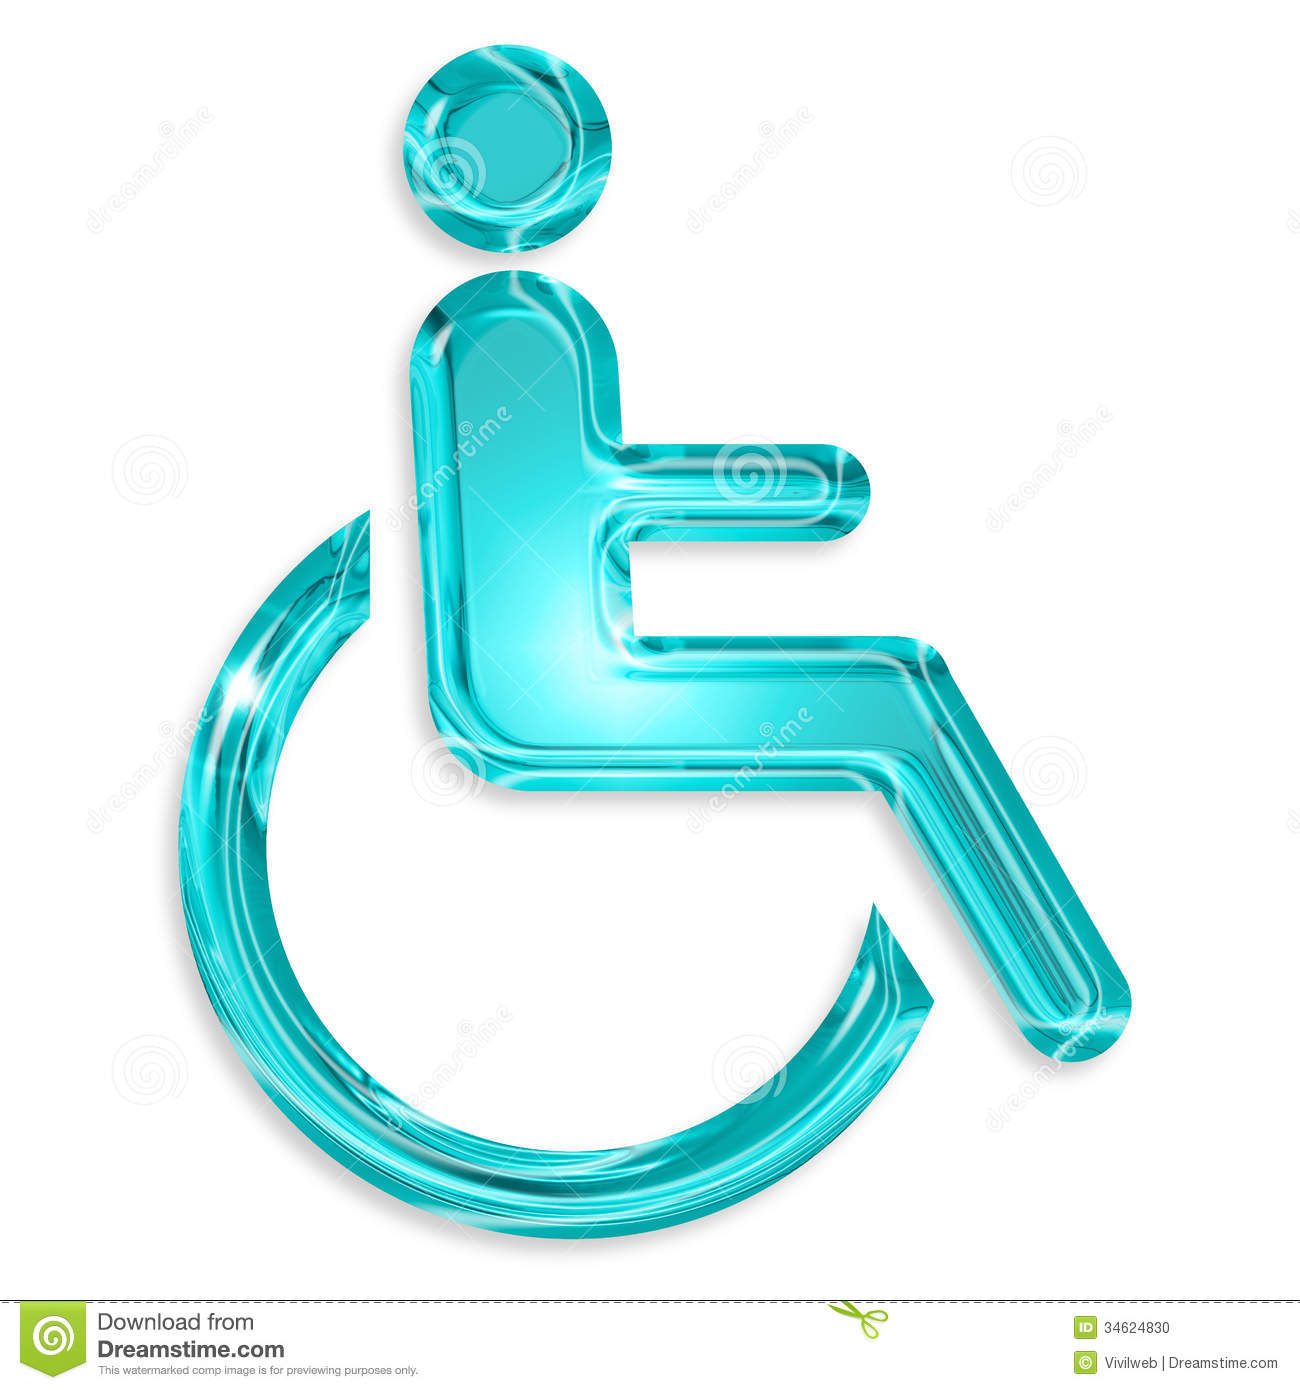 Disability Symbol Stock Photo Image 34624830